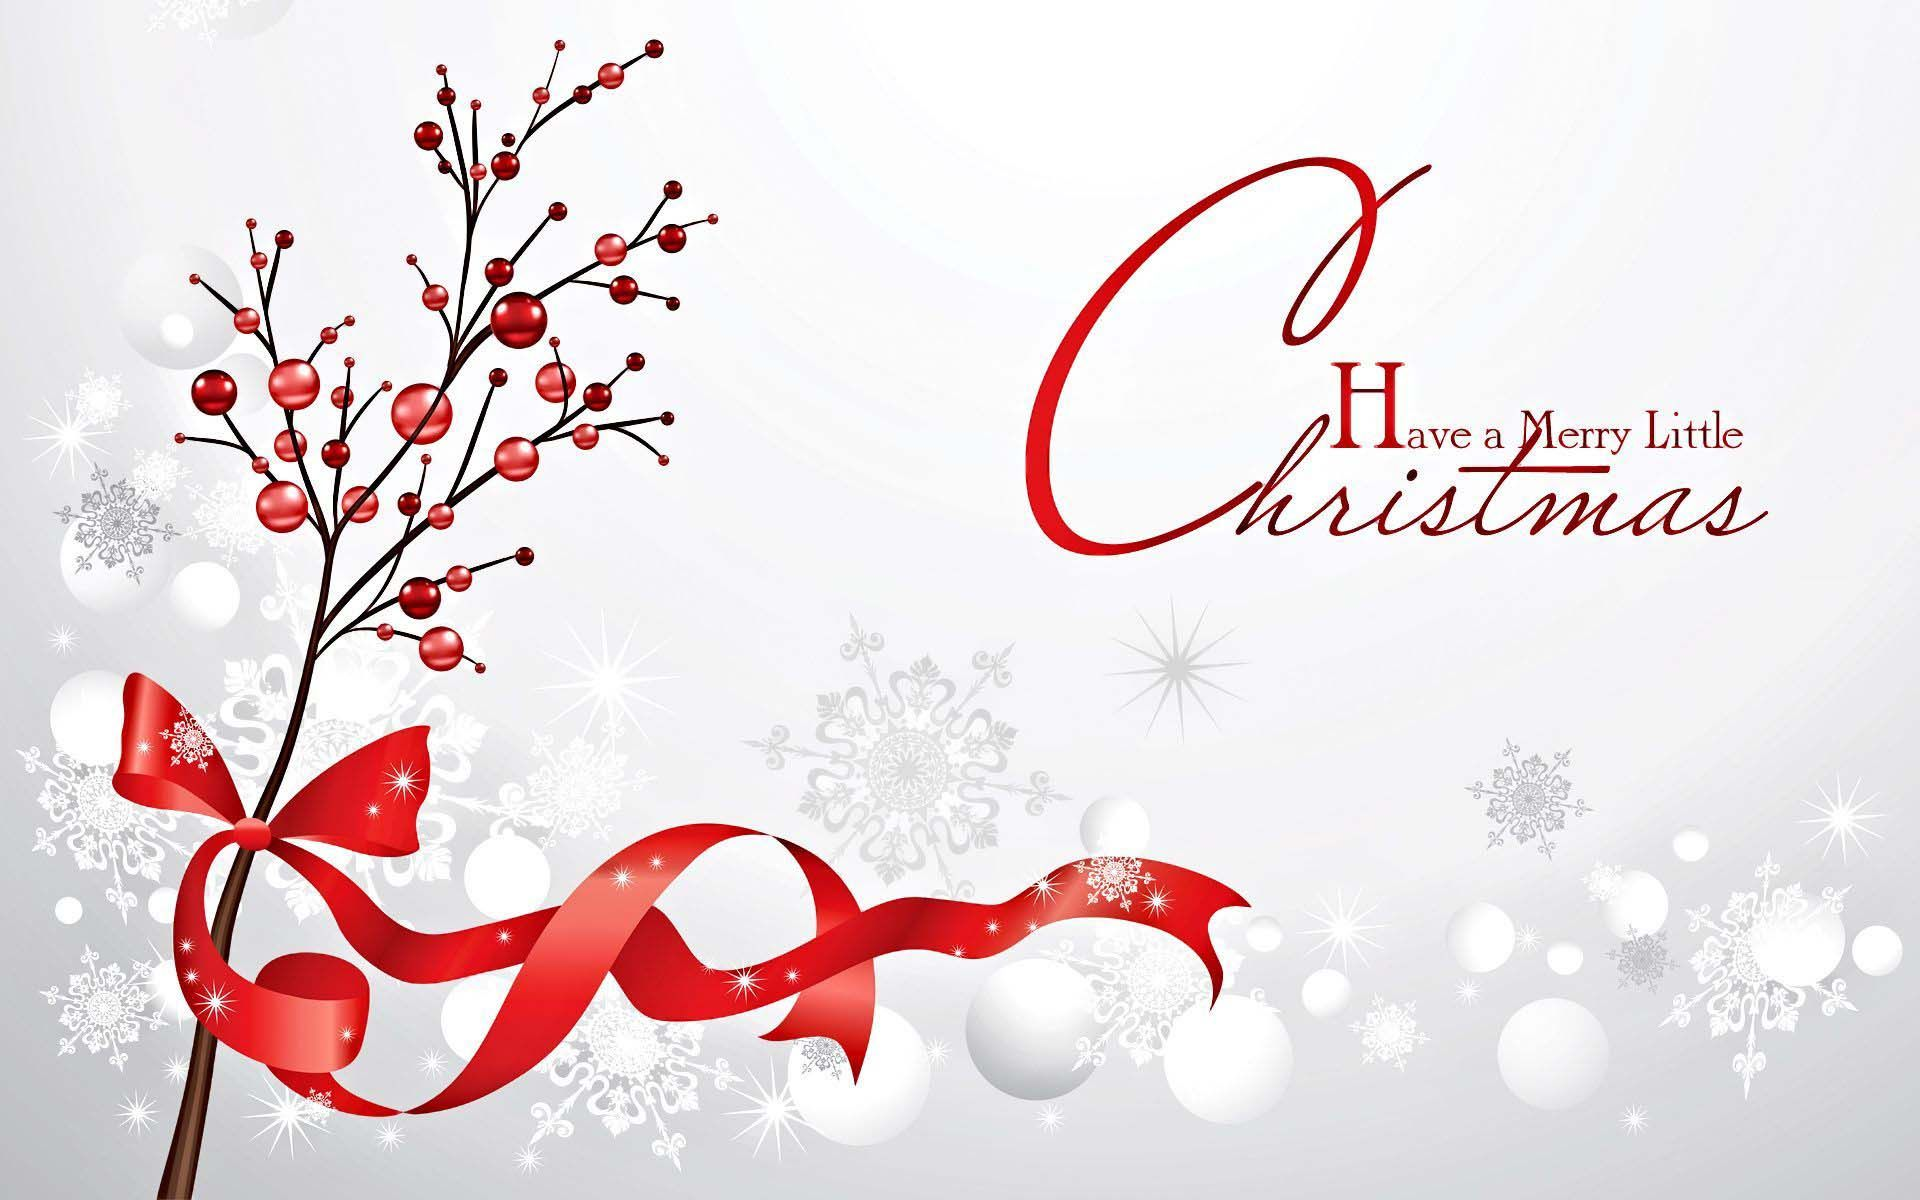 merry-christmas-hd-wallpaper-free-download-for-laptop-or-pc